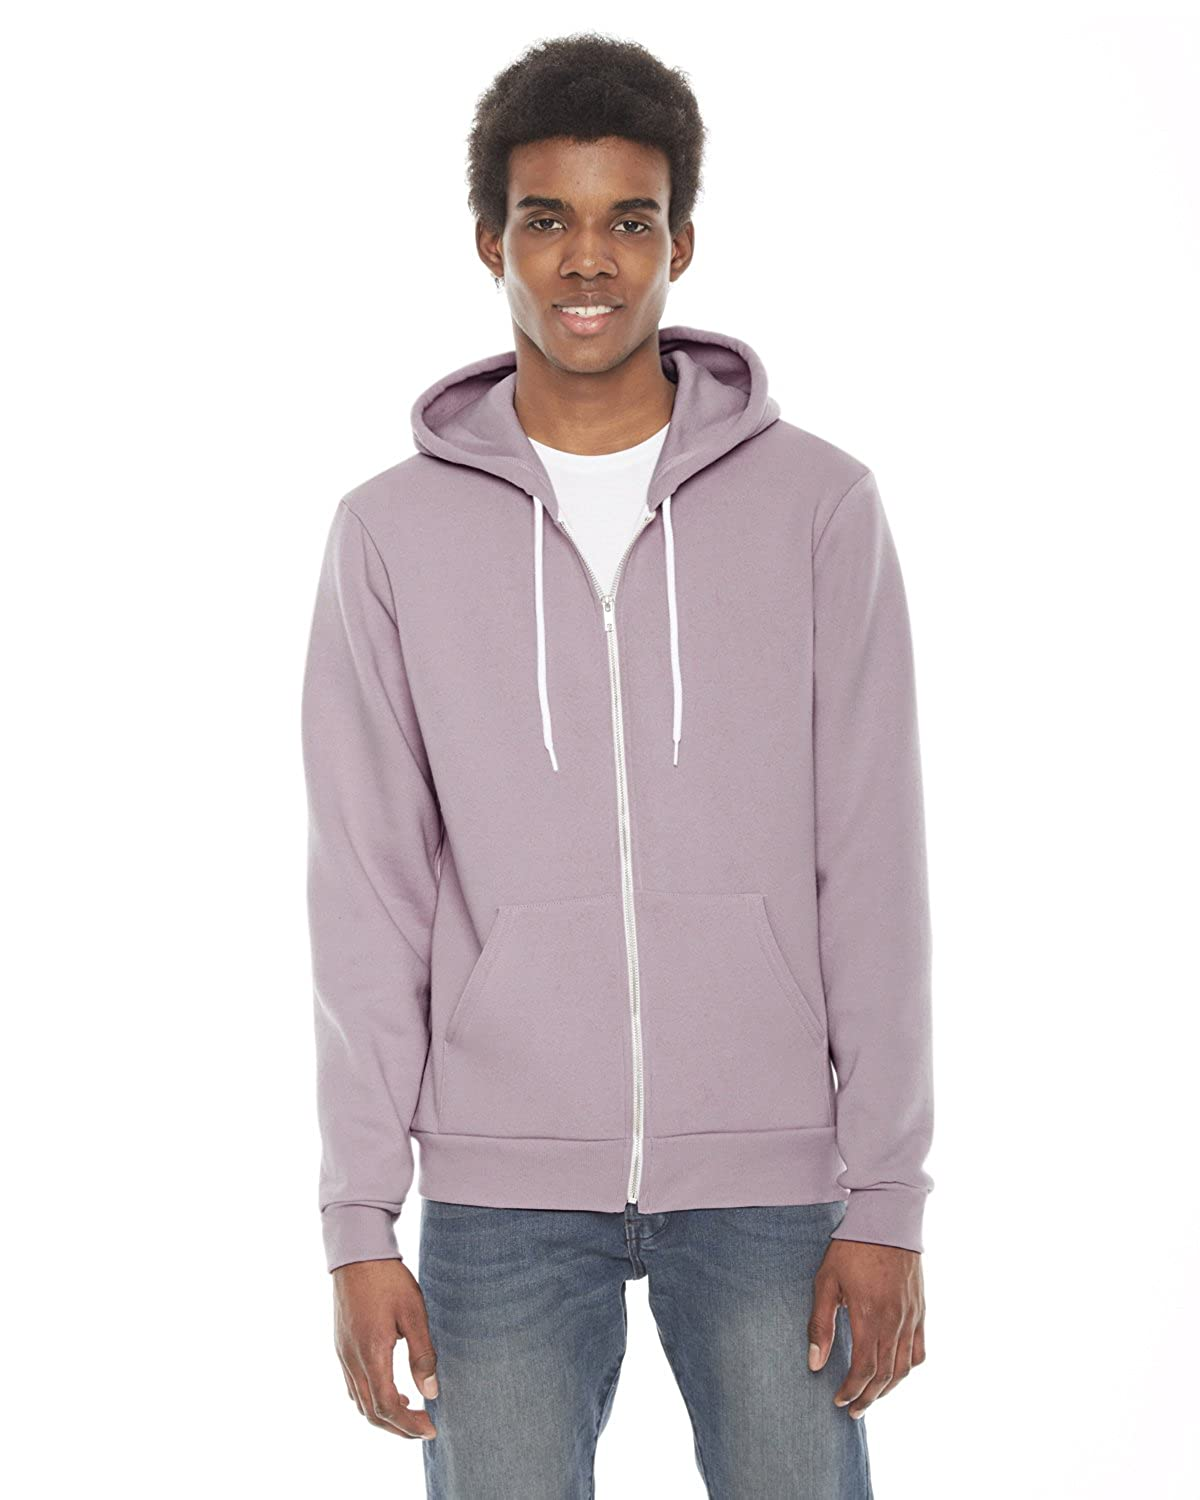 Mauve American Apparel Men's Unisex Flex Fleece Zip Hoodie